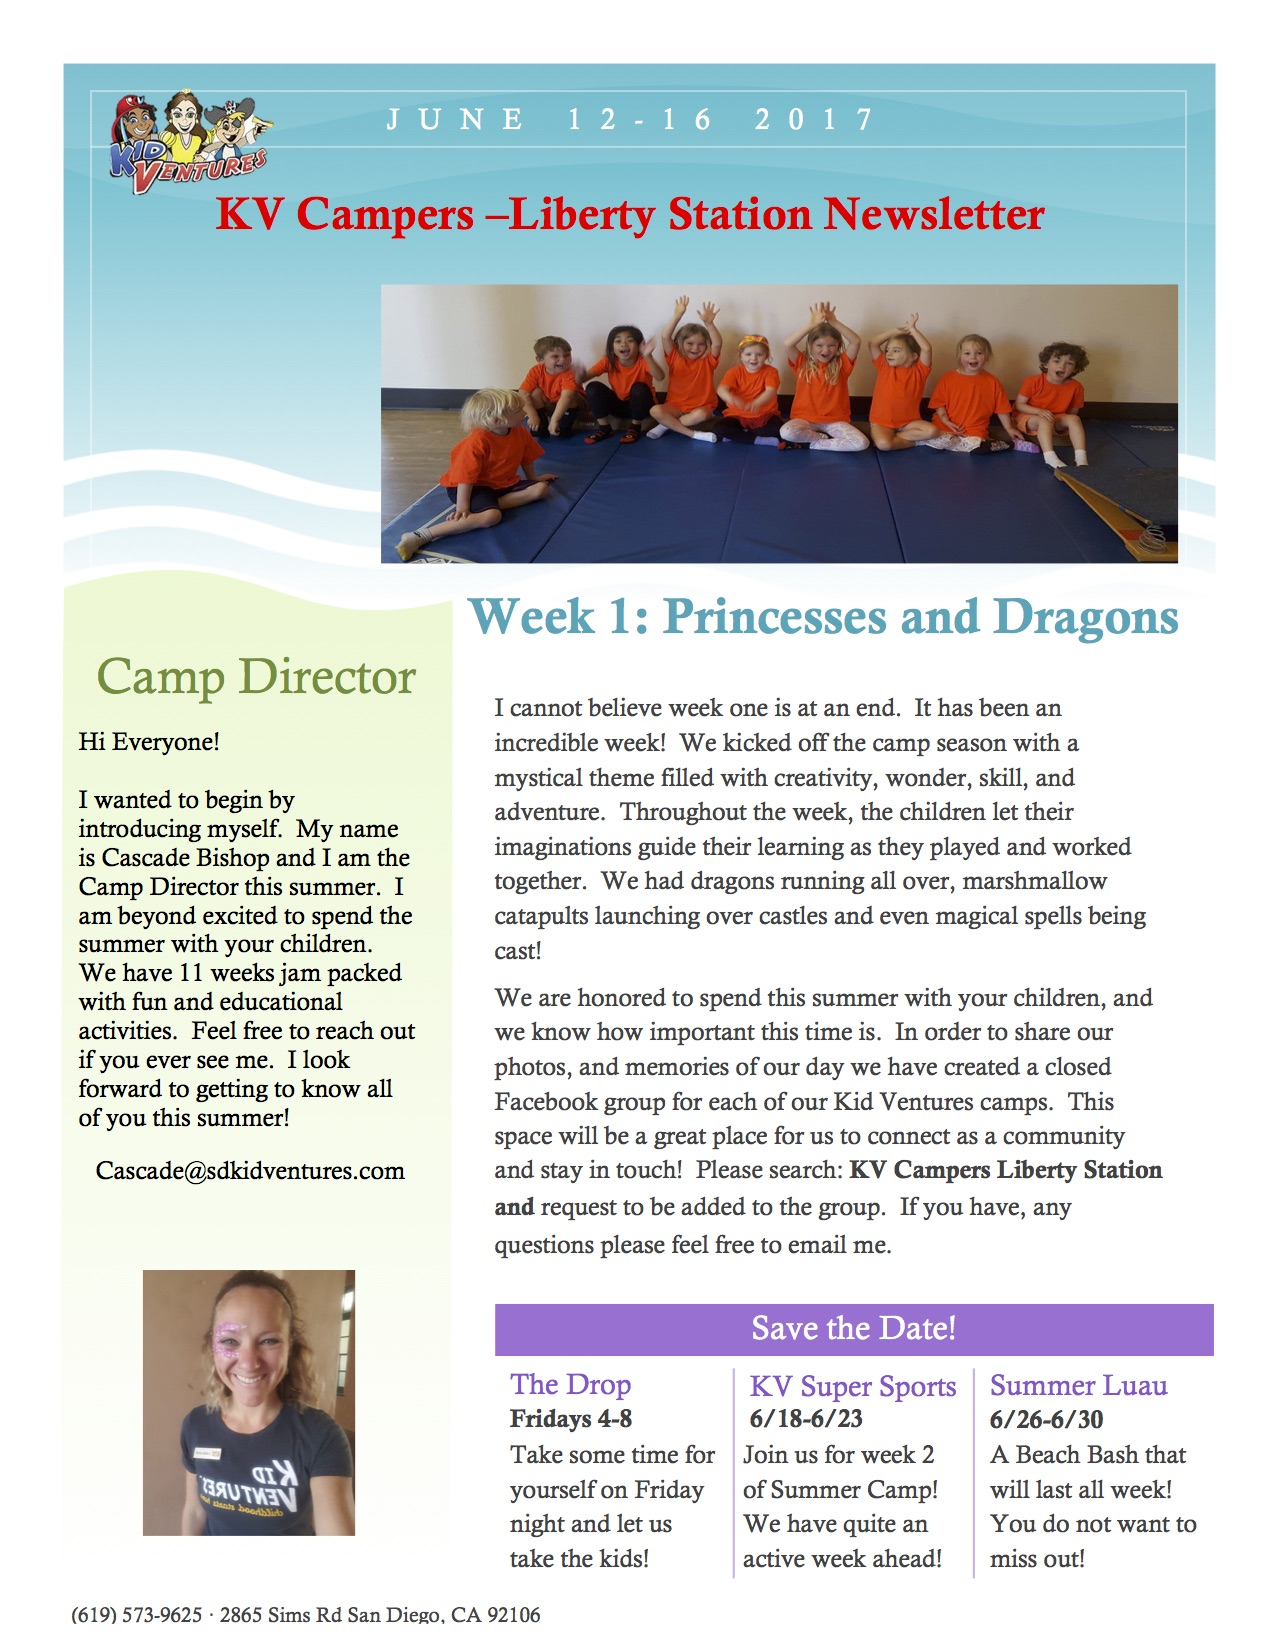 KVLS Camp Newsletter Week 1 2017